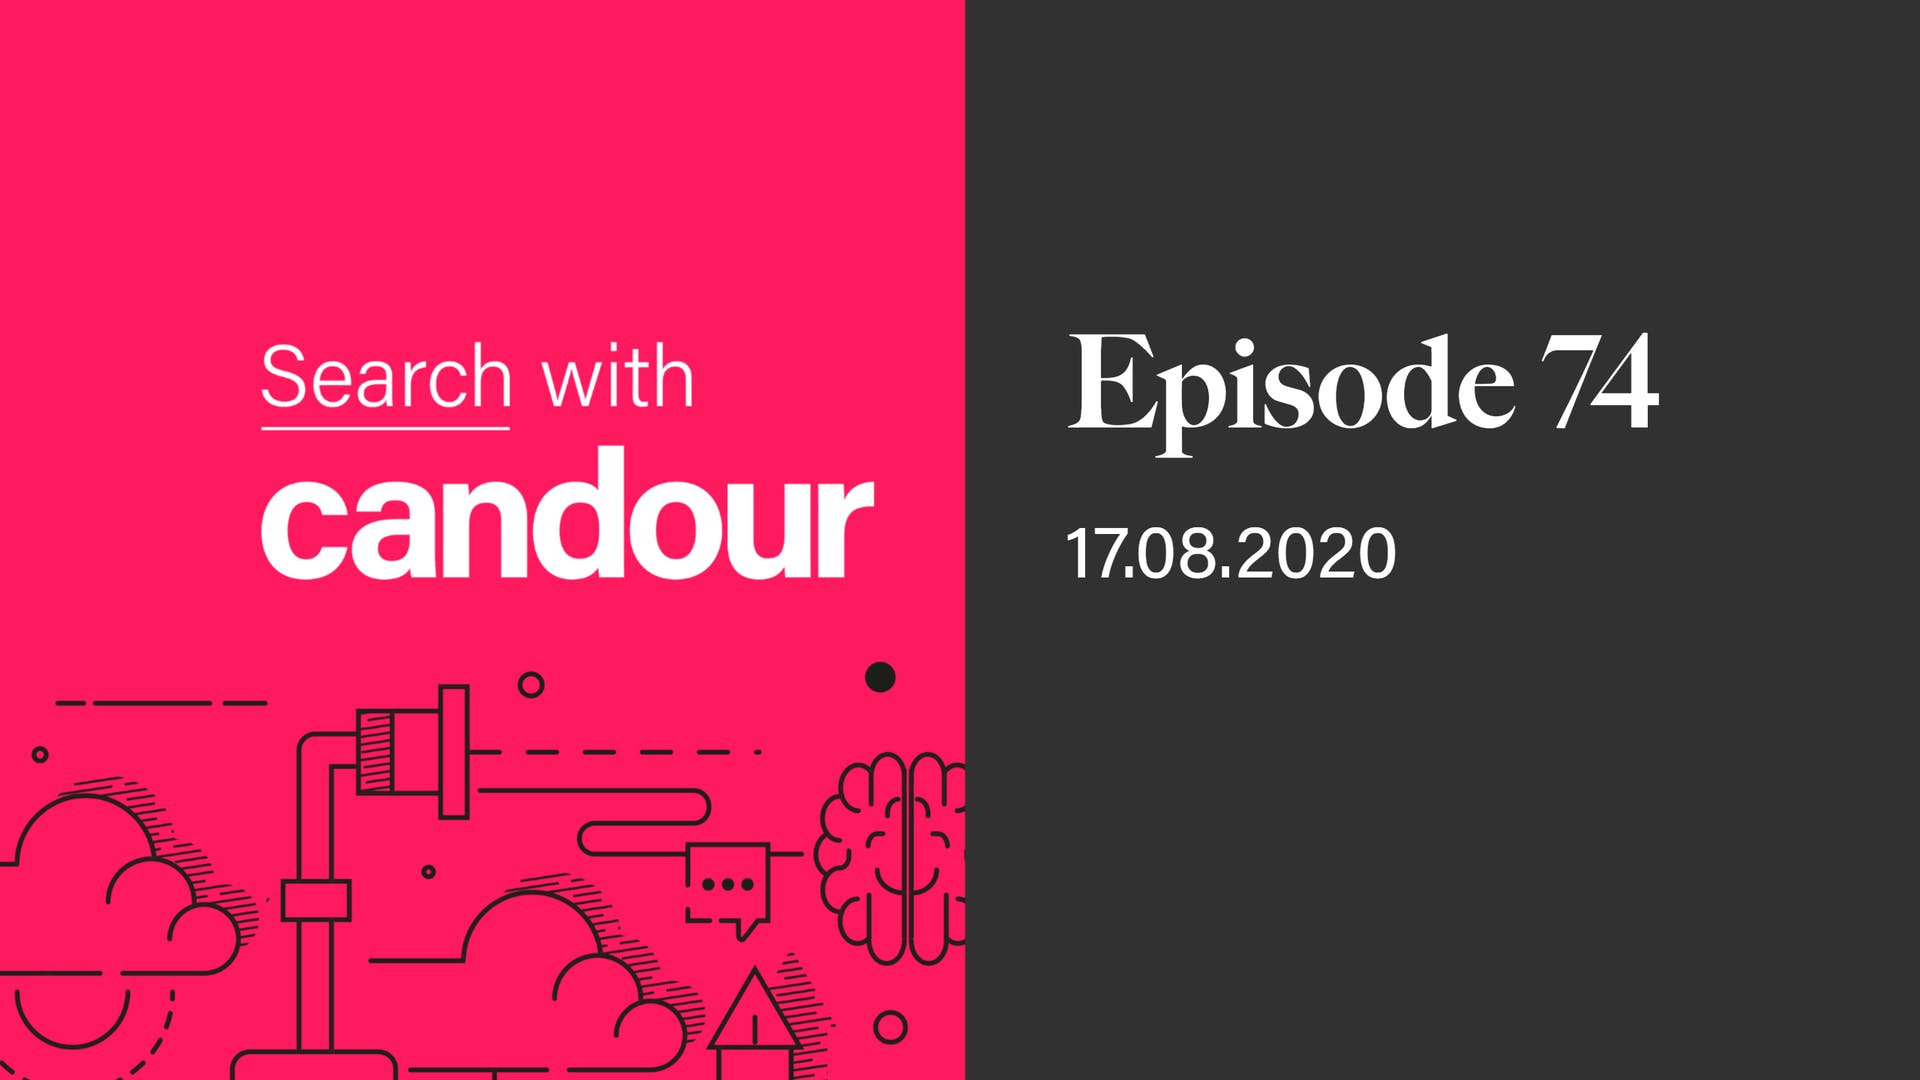 Search with Candour - Episode 74